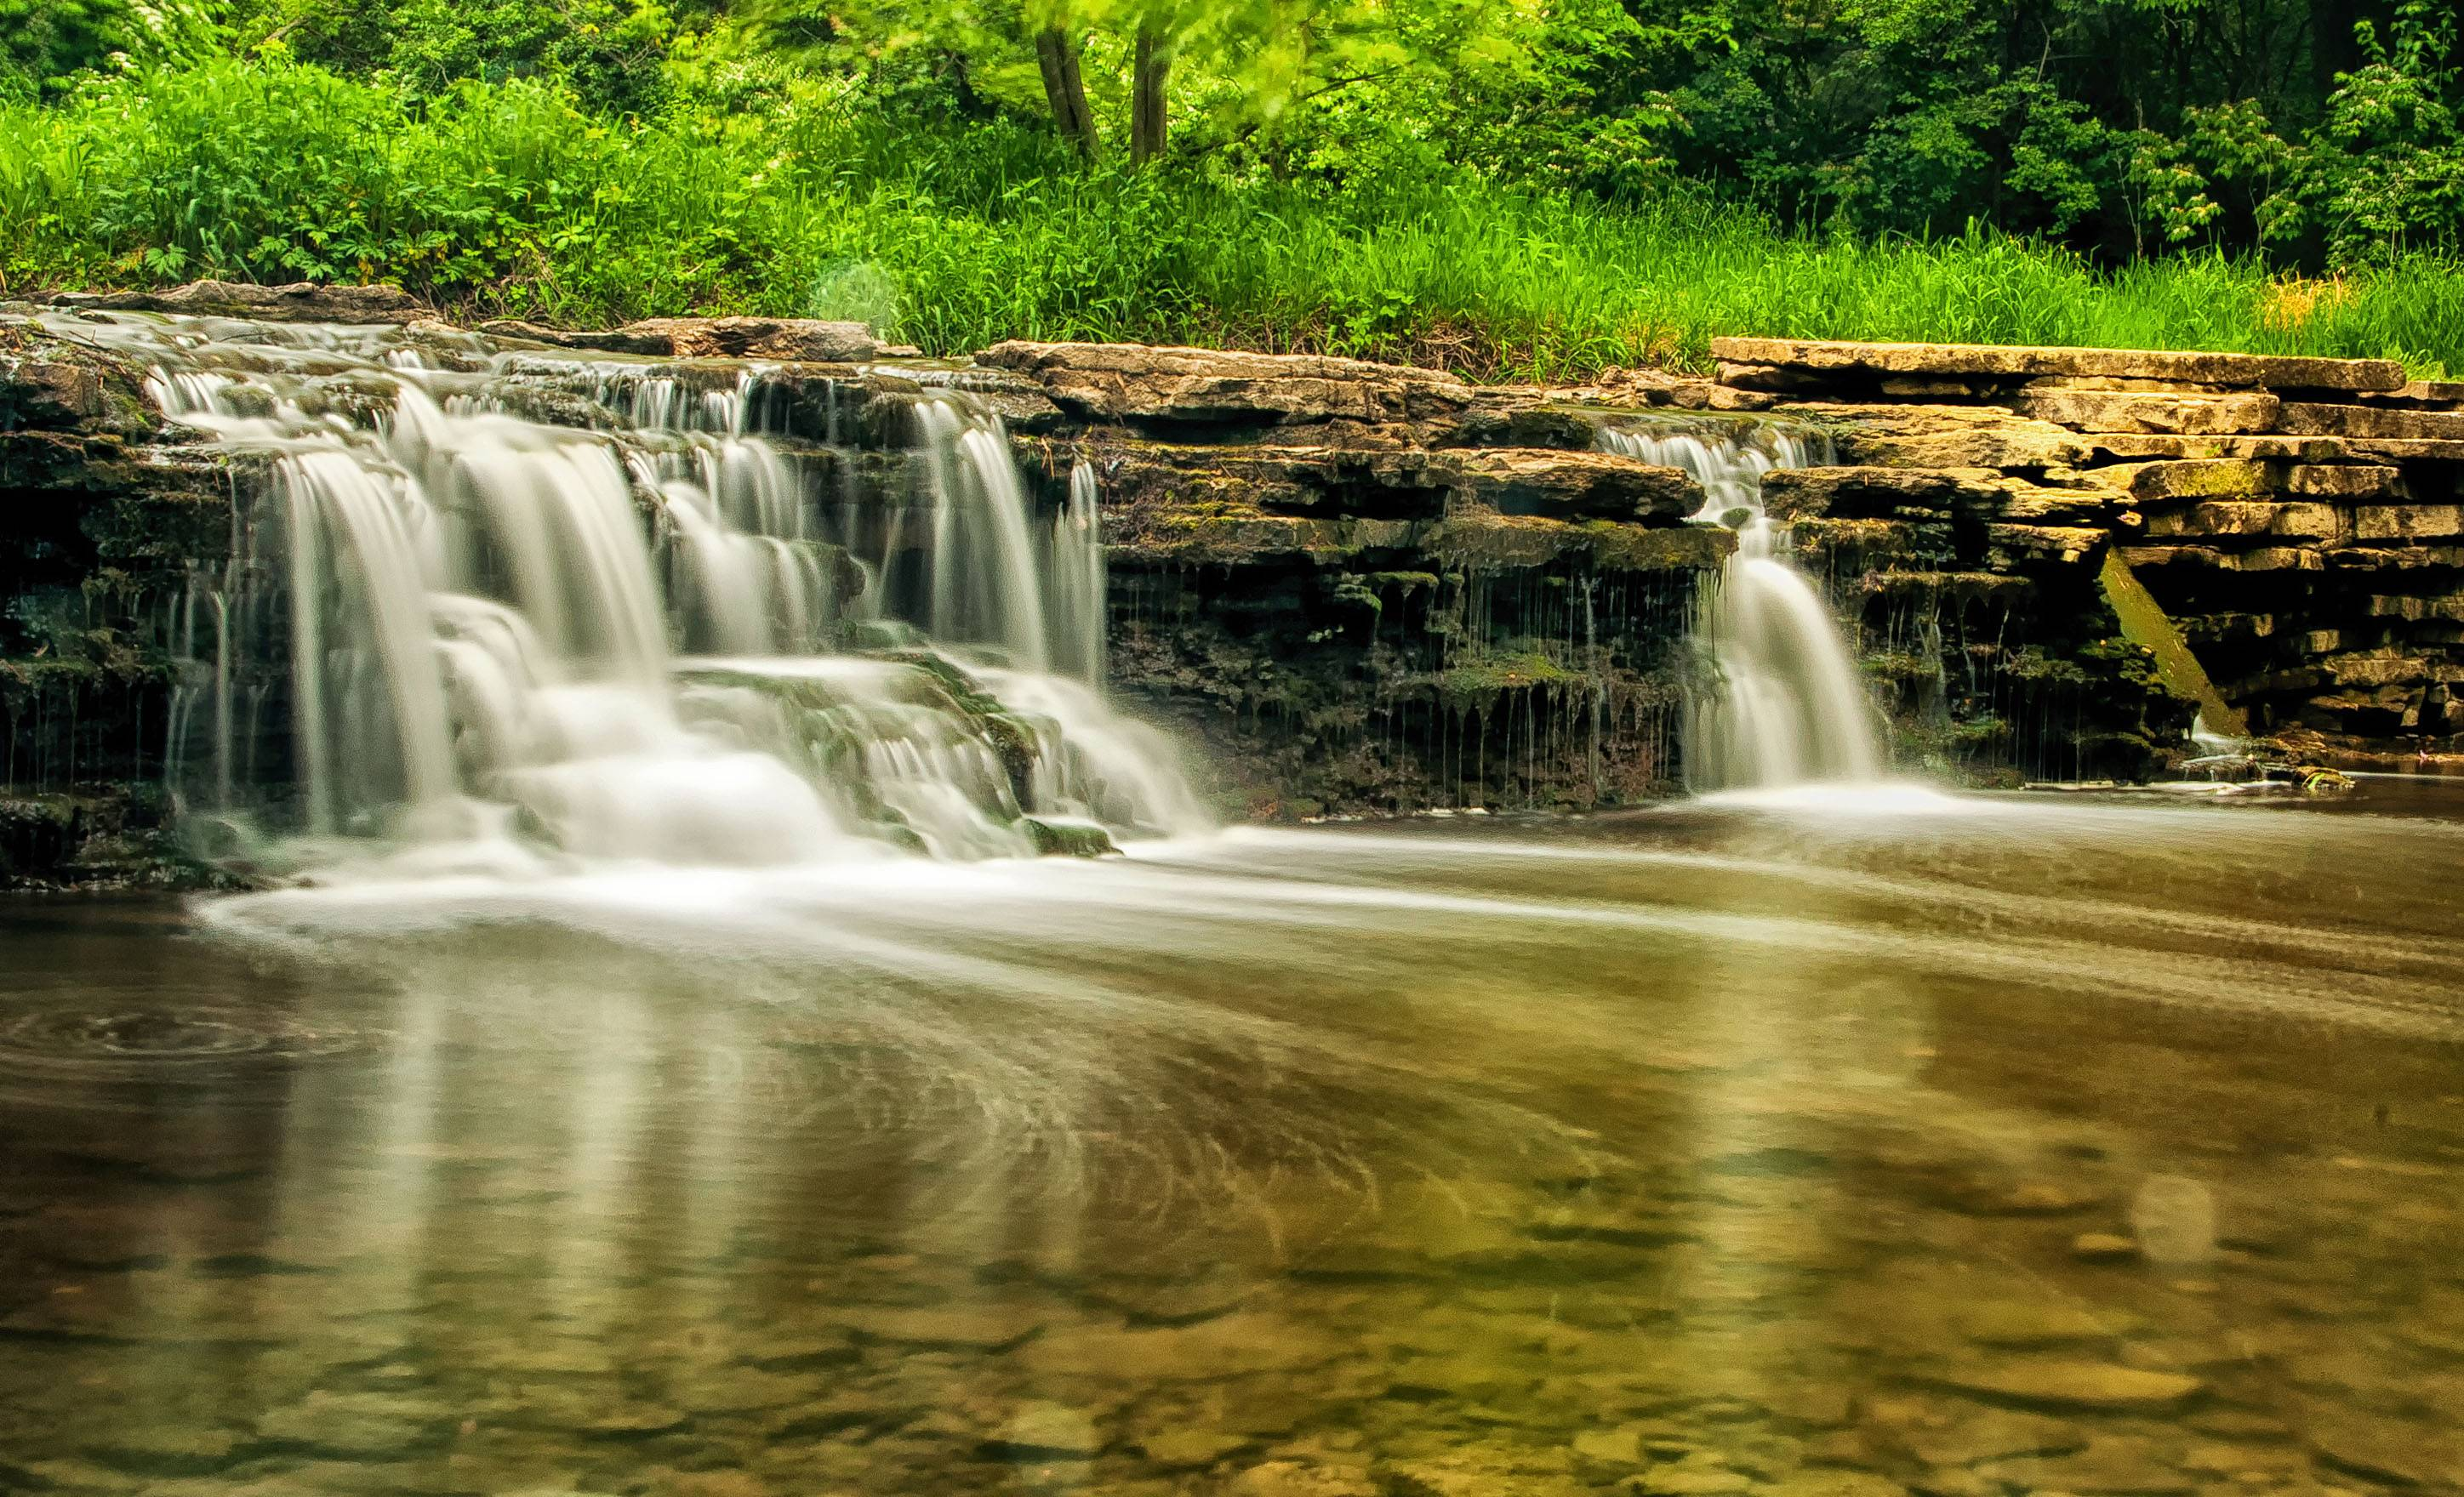 This photo is of the waterfall at Water Fall Glen Forest Preserve. A very pretty fall hidden back on the trail in the preserve. I used a neutral density filter and time exposure to get this ethereal view.